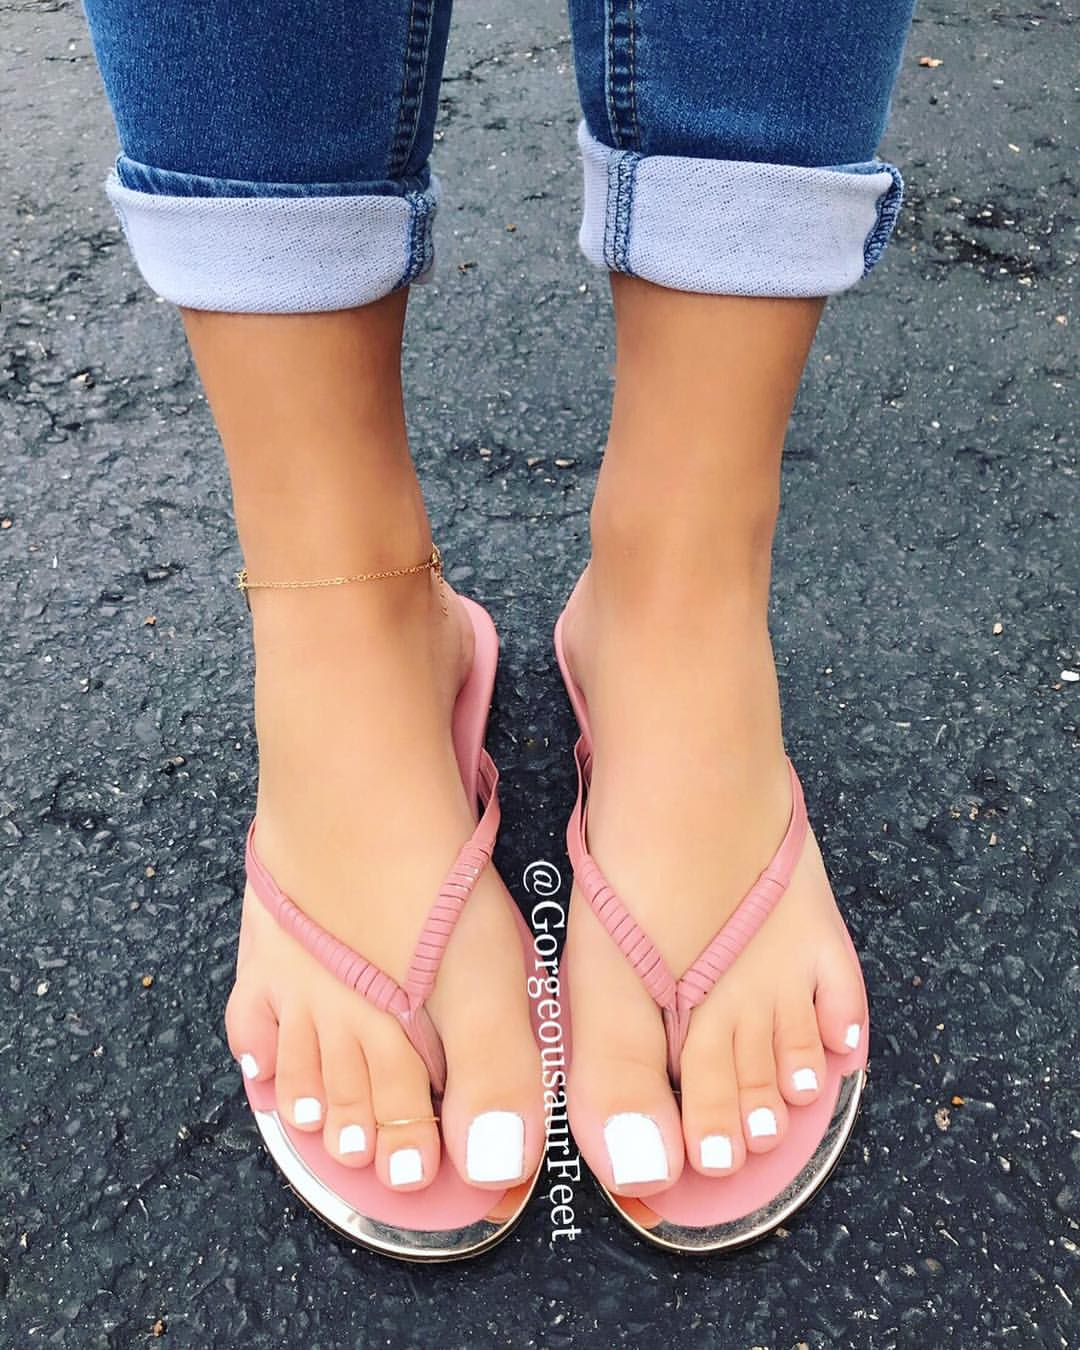 👣 Her Sexy Feet 👣 on Twitter: (Photo Credit